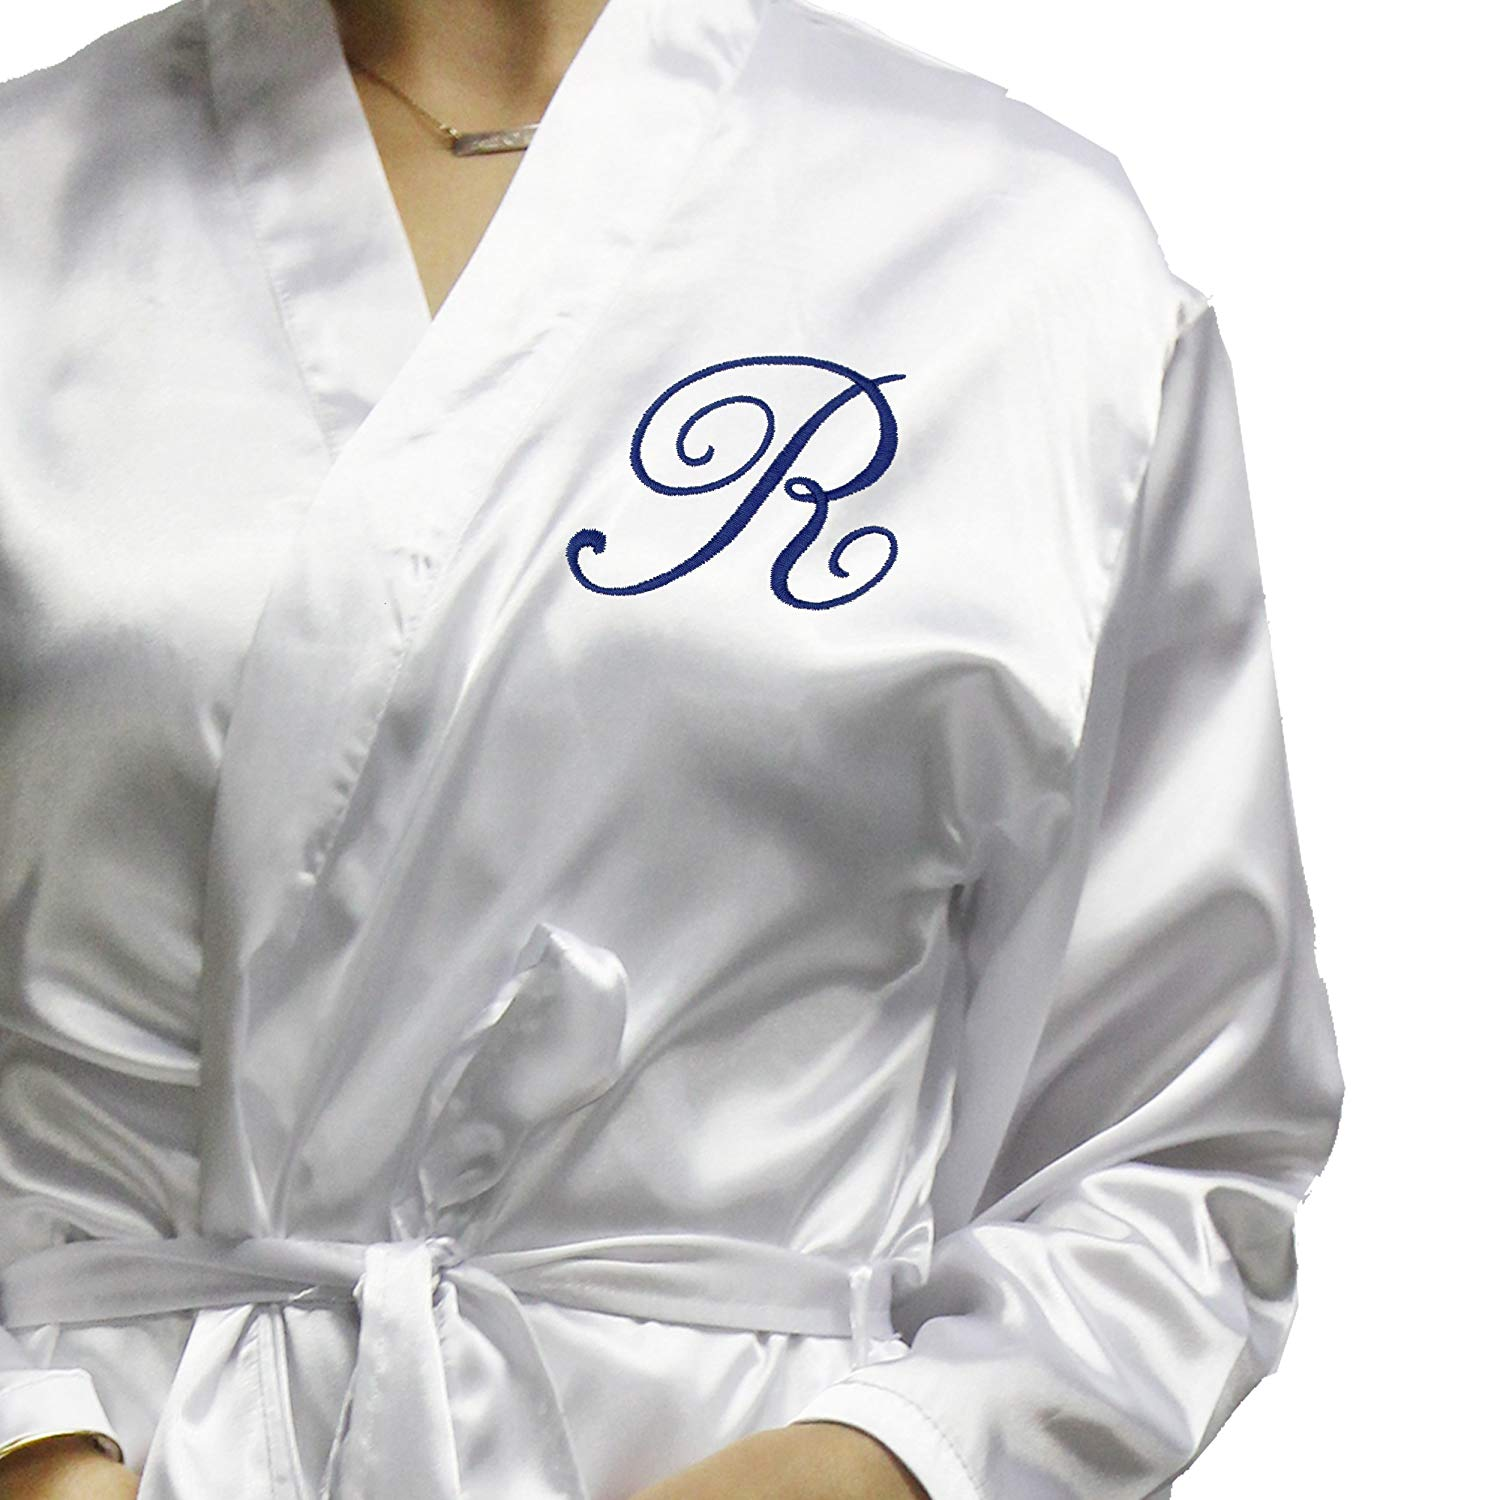 509b73b4e8 Get Quotations · Personalized Satin Bridesmaid Robe Gifts - Silky Monogram  Getting Ready Robes Set - Monogrammed for Free